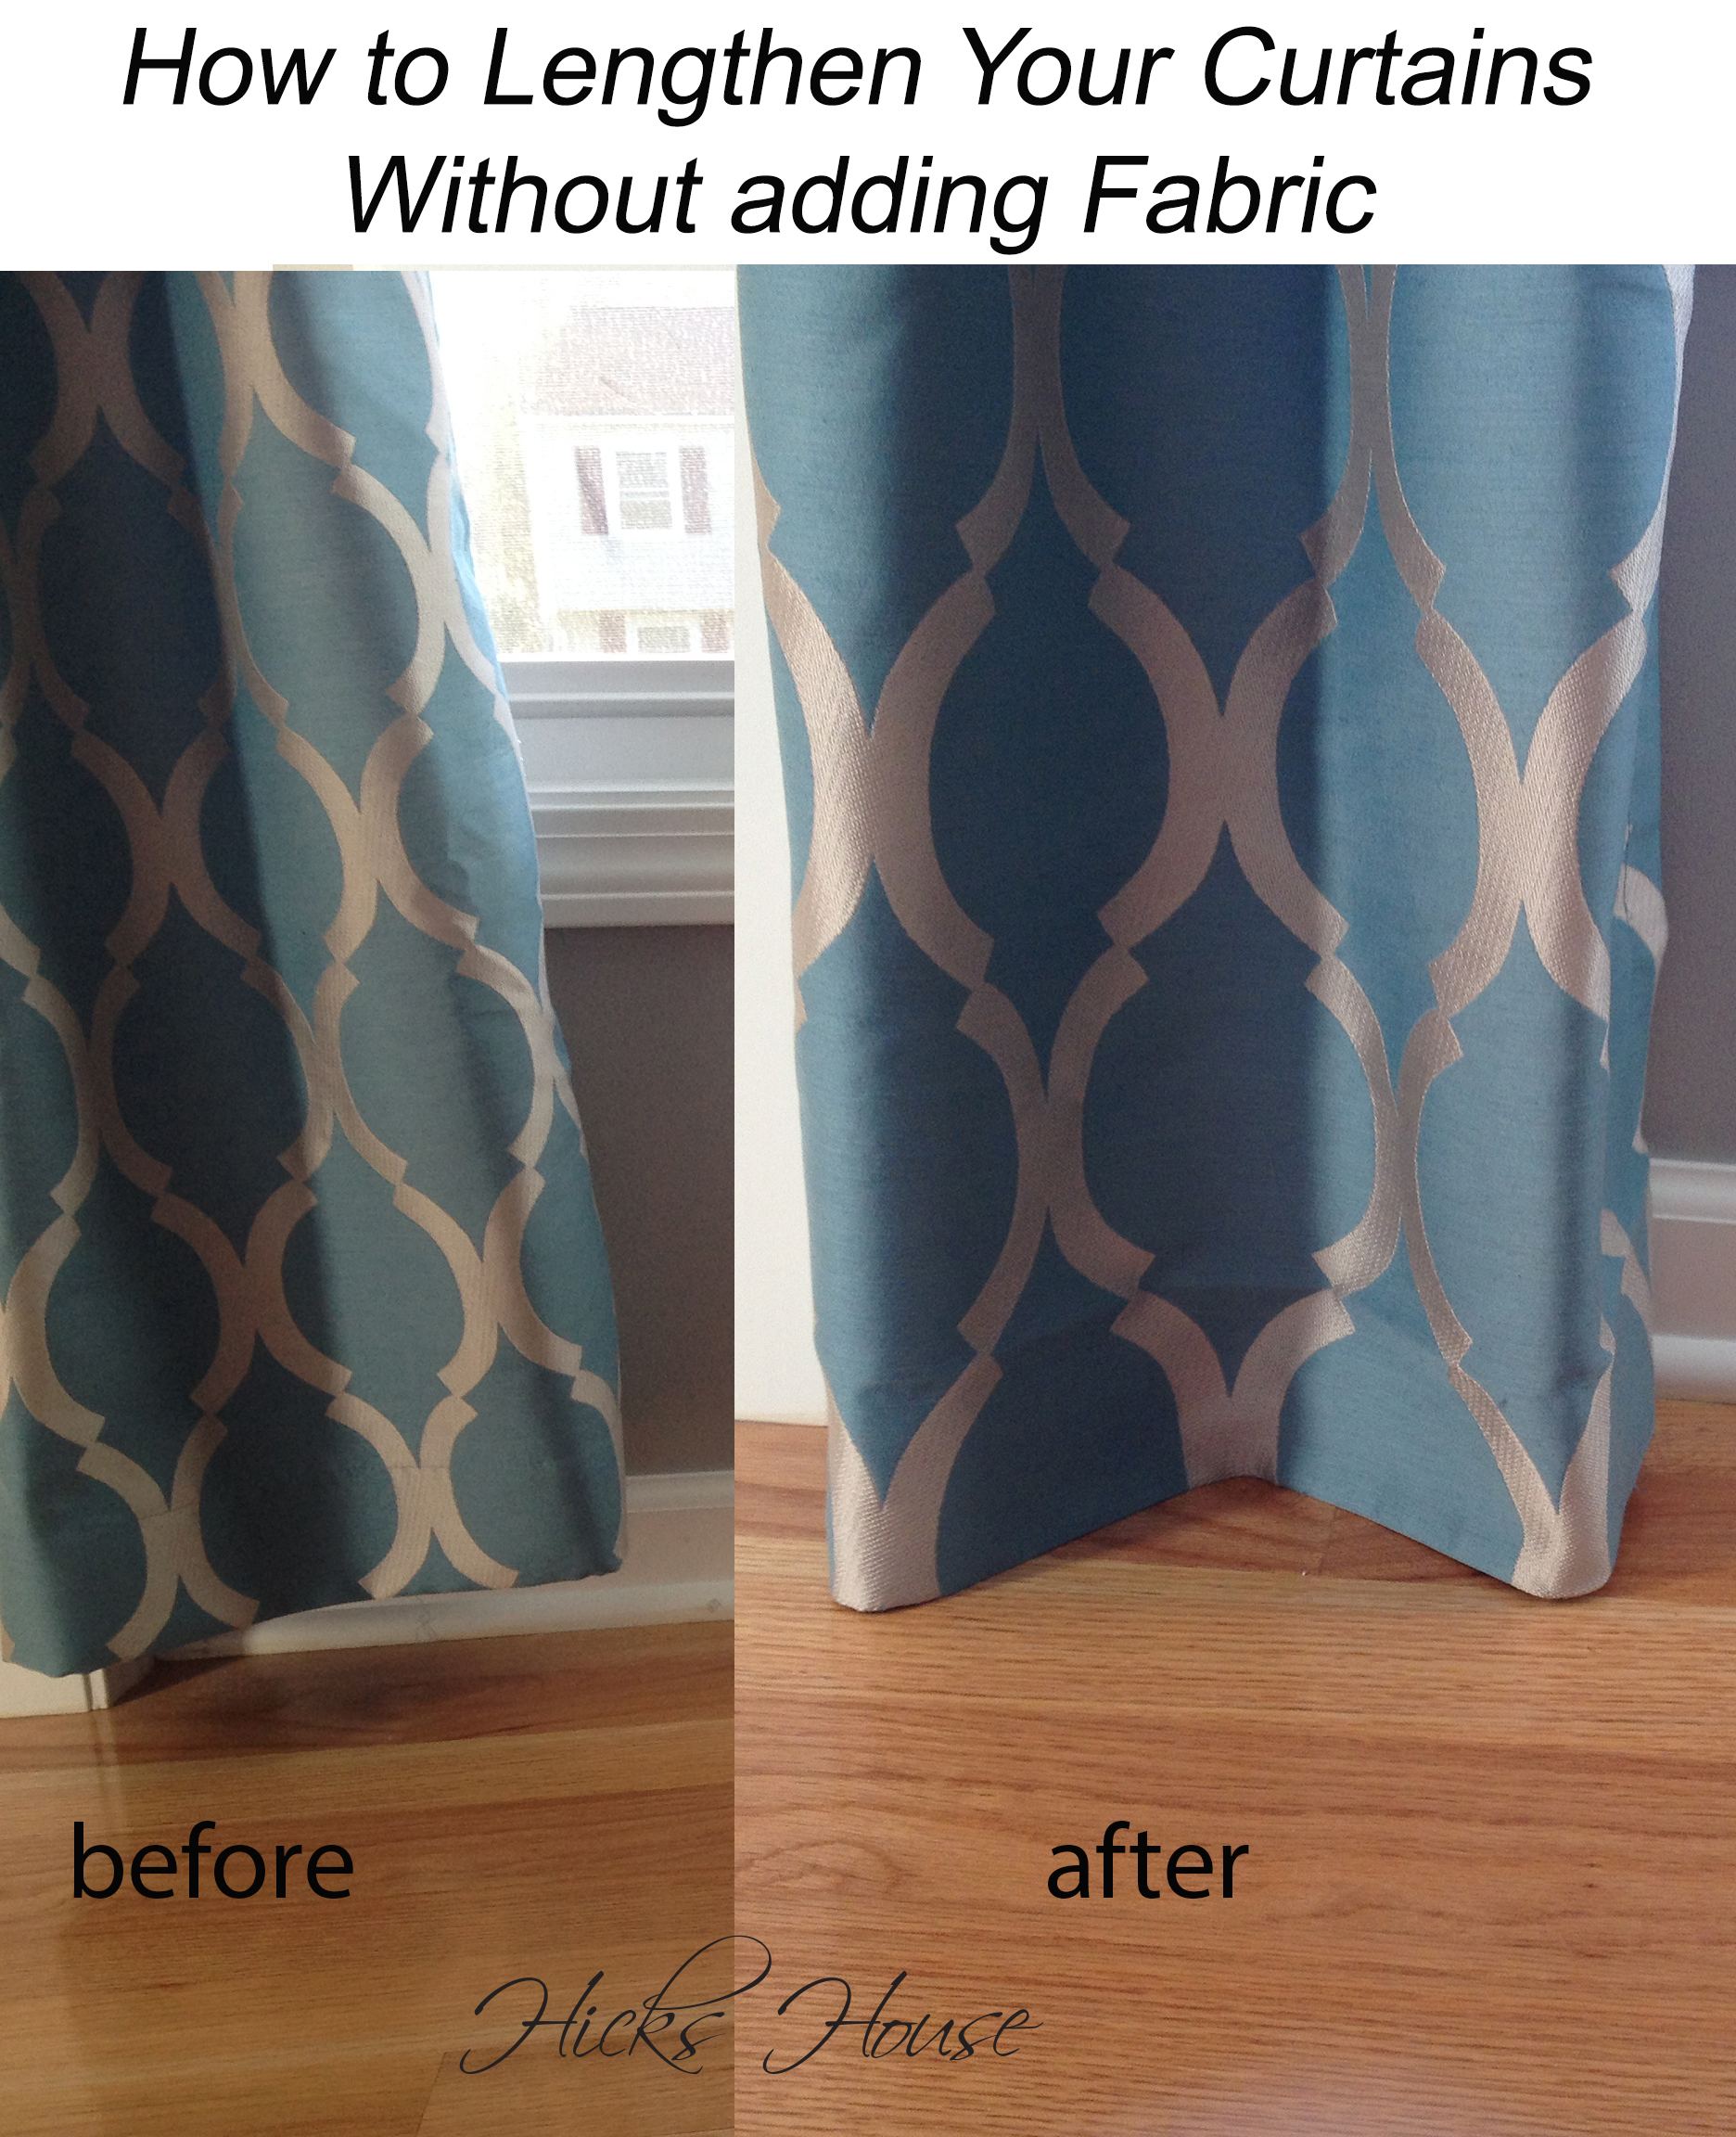 How to Lenthen Curtain Without adding Fabric